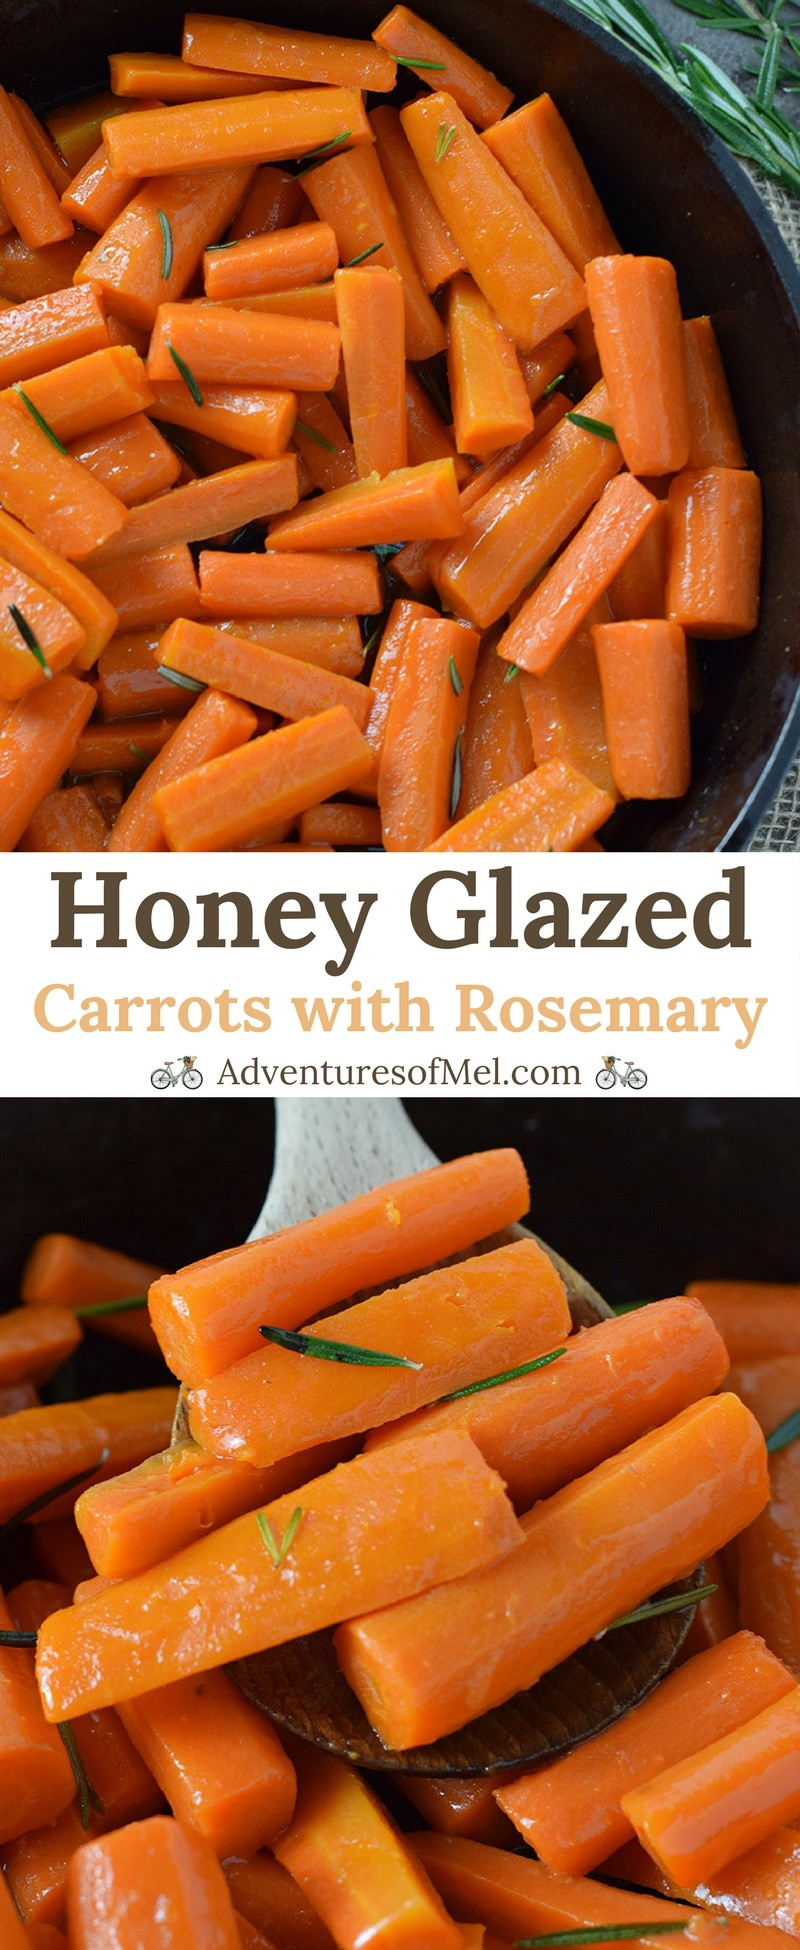 Honey Glazed Carrots, made with simple ingredients like butter, honey, and rosemary. Delicious side dish recipe, perfect for holidays or weeknight meals.